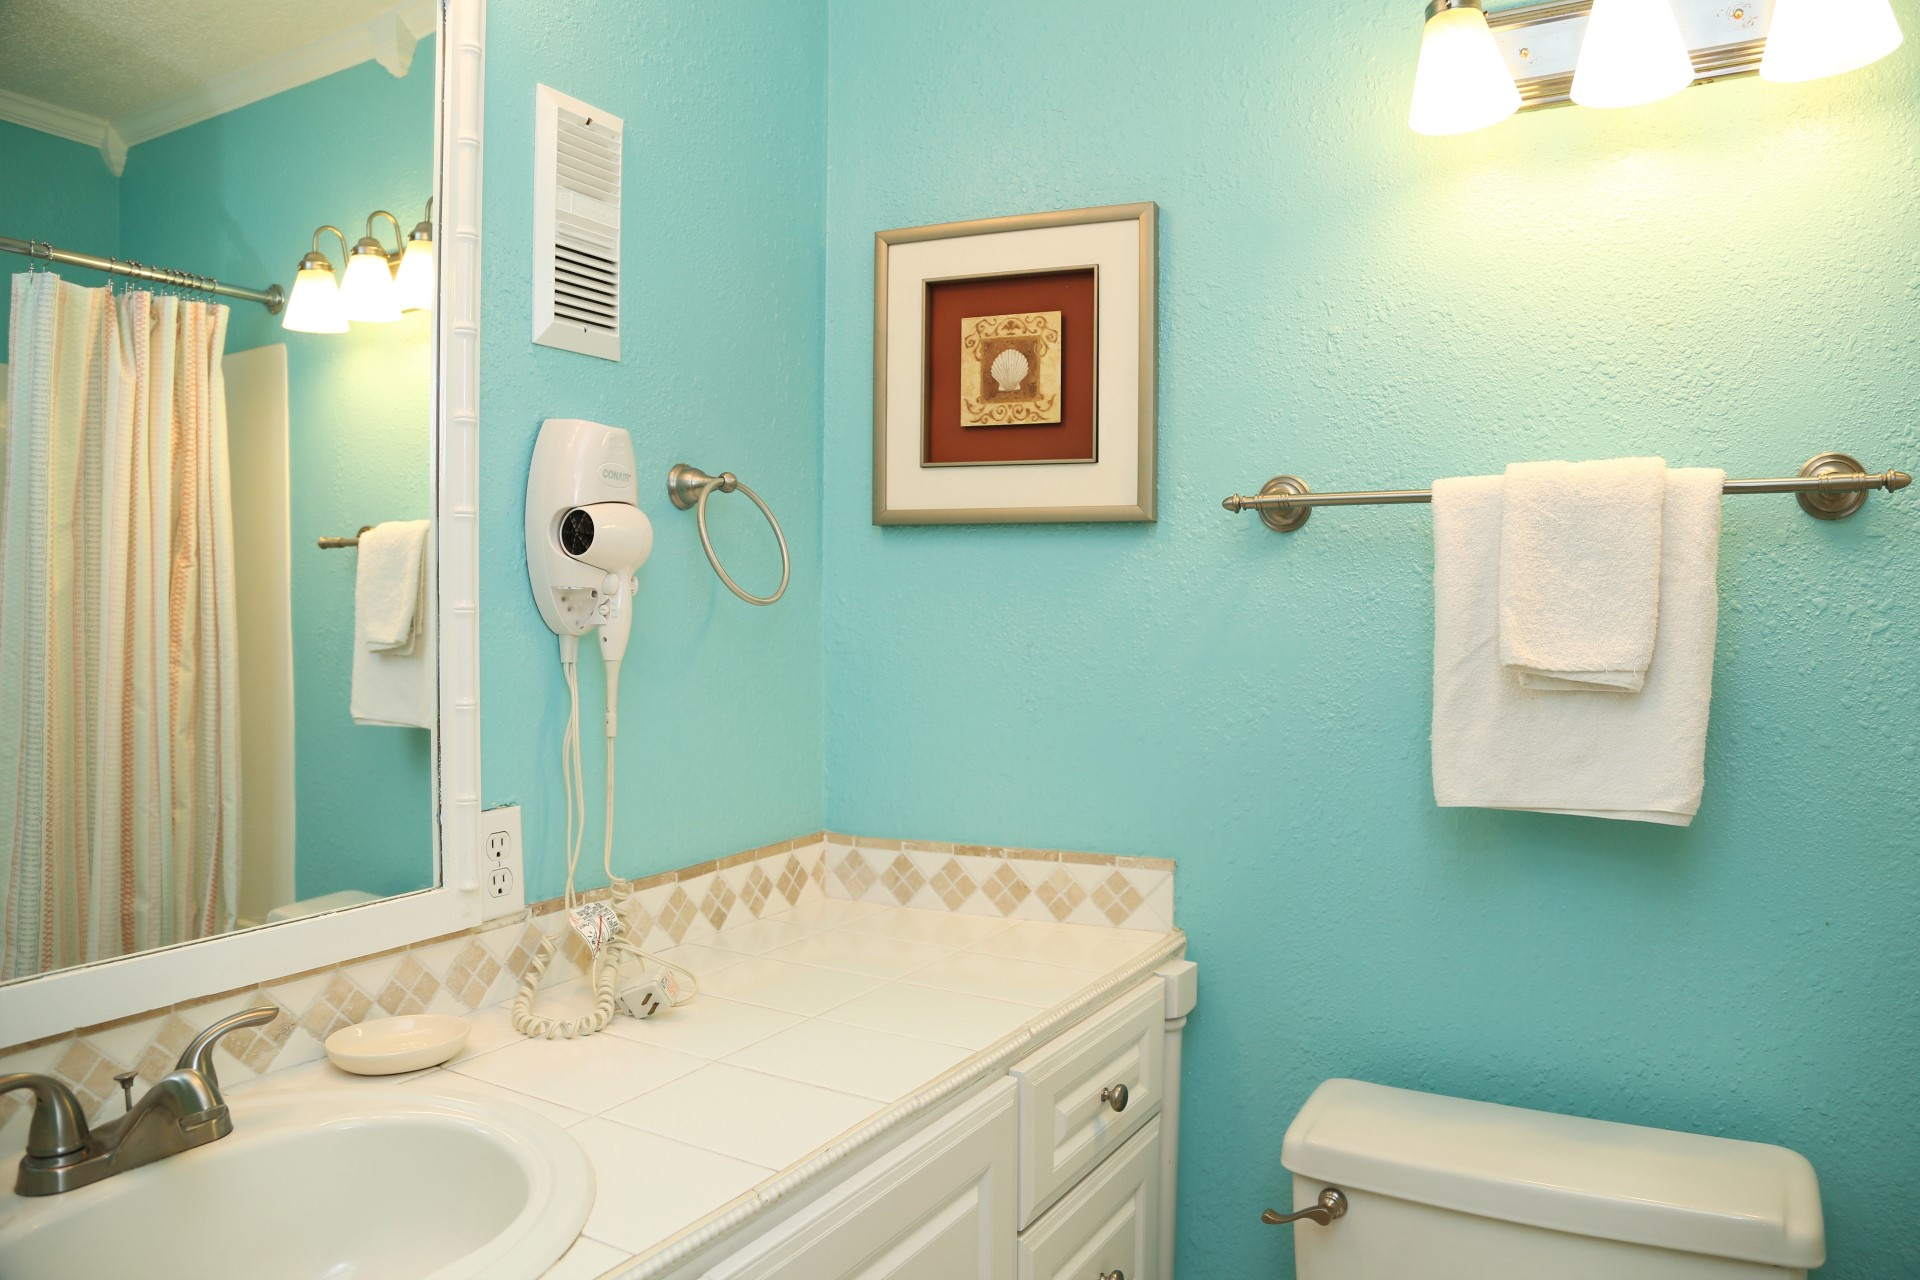 The hall bathroom includes a shower/tub combo.